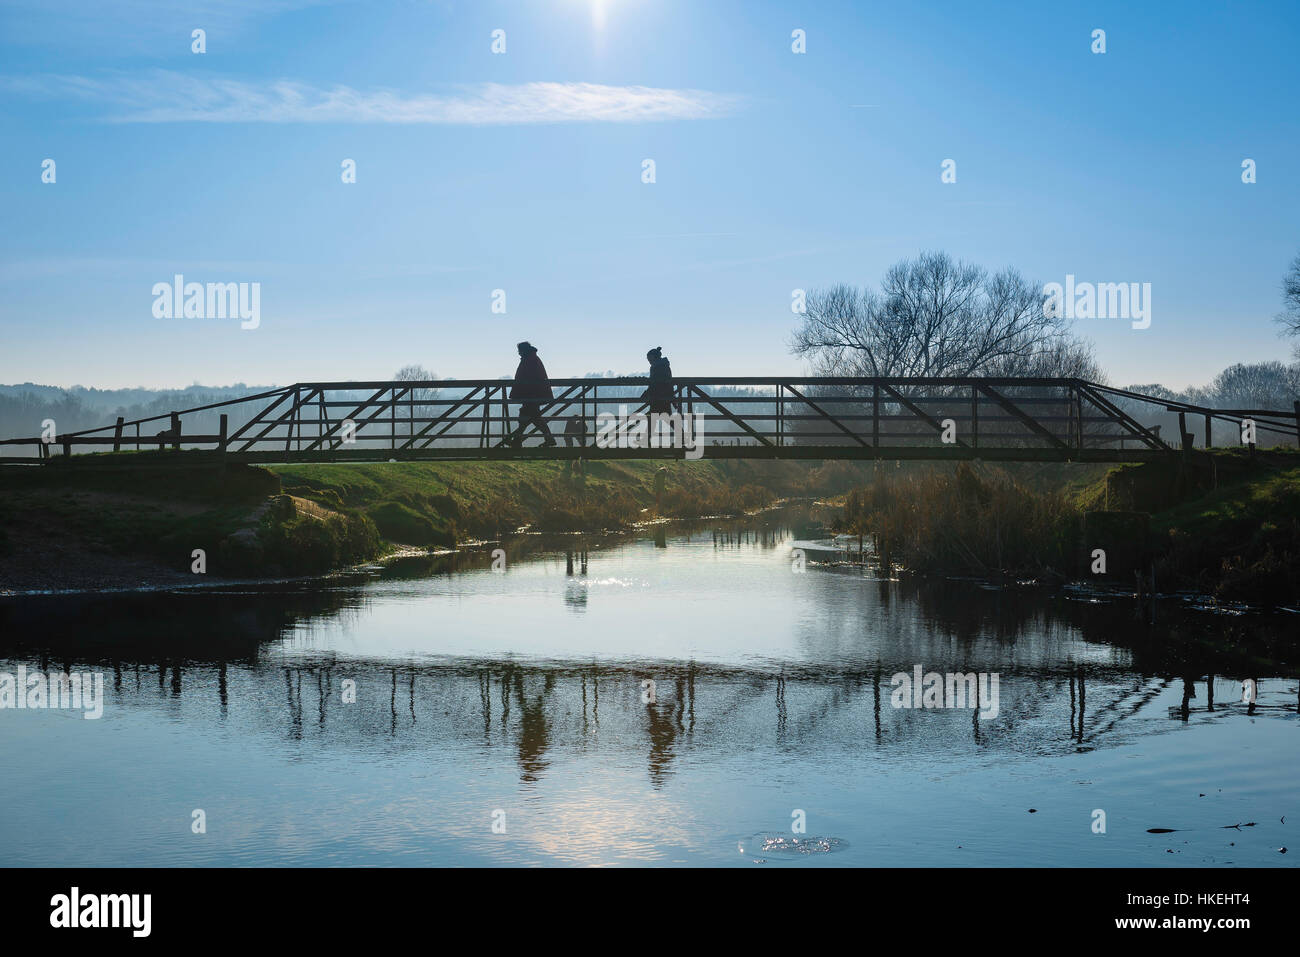 A middle aged couple taking a winter walk cross a bridge over the River Stour in Suffolk, UK. - Stock Image